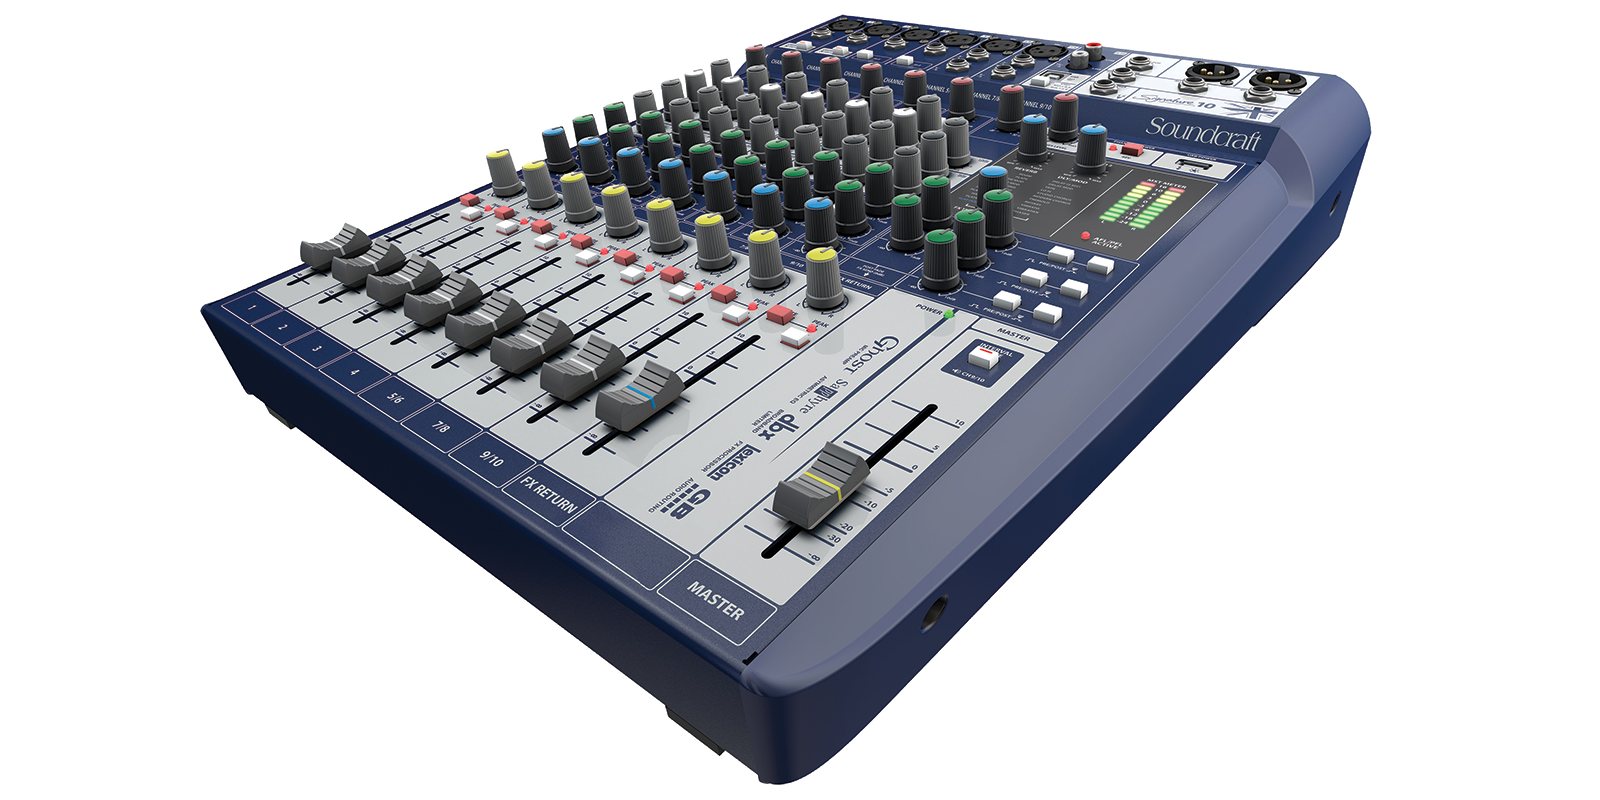 Signature 10 Soundcraft Professional Audio Mixers Pc Wiring Diagram Also Home Recording Studio Setup As Well